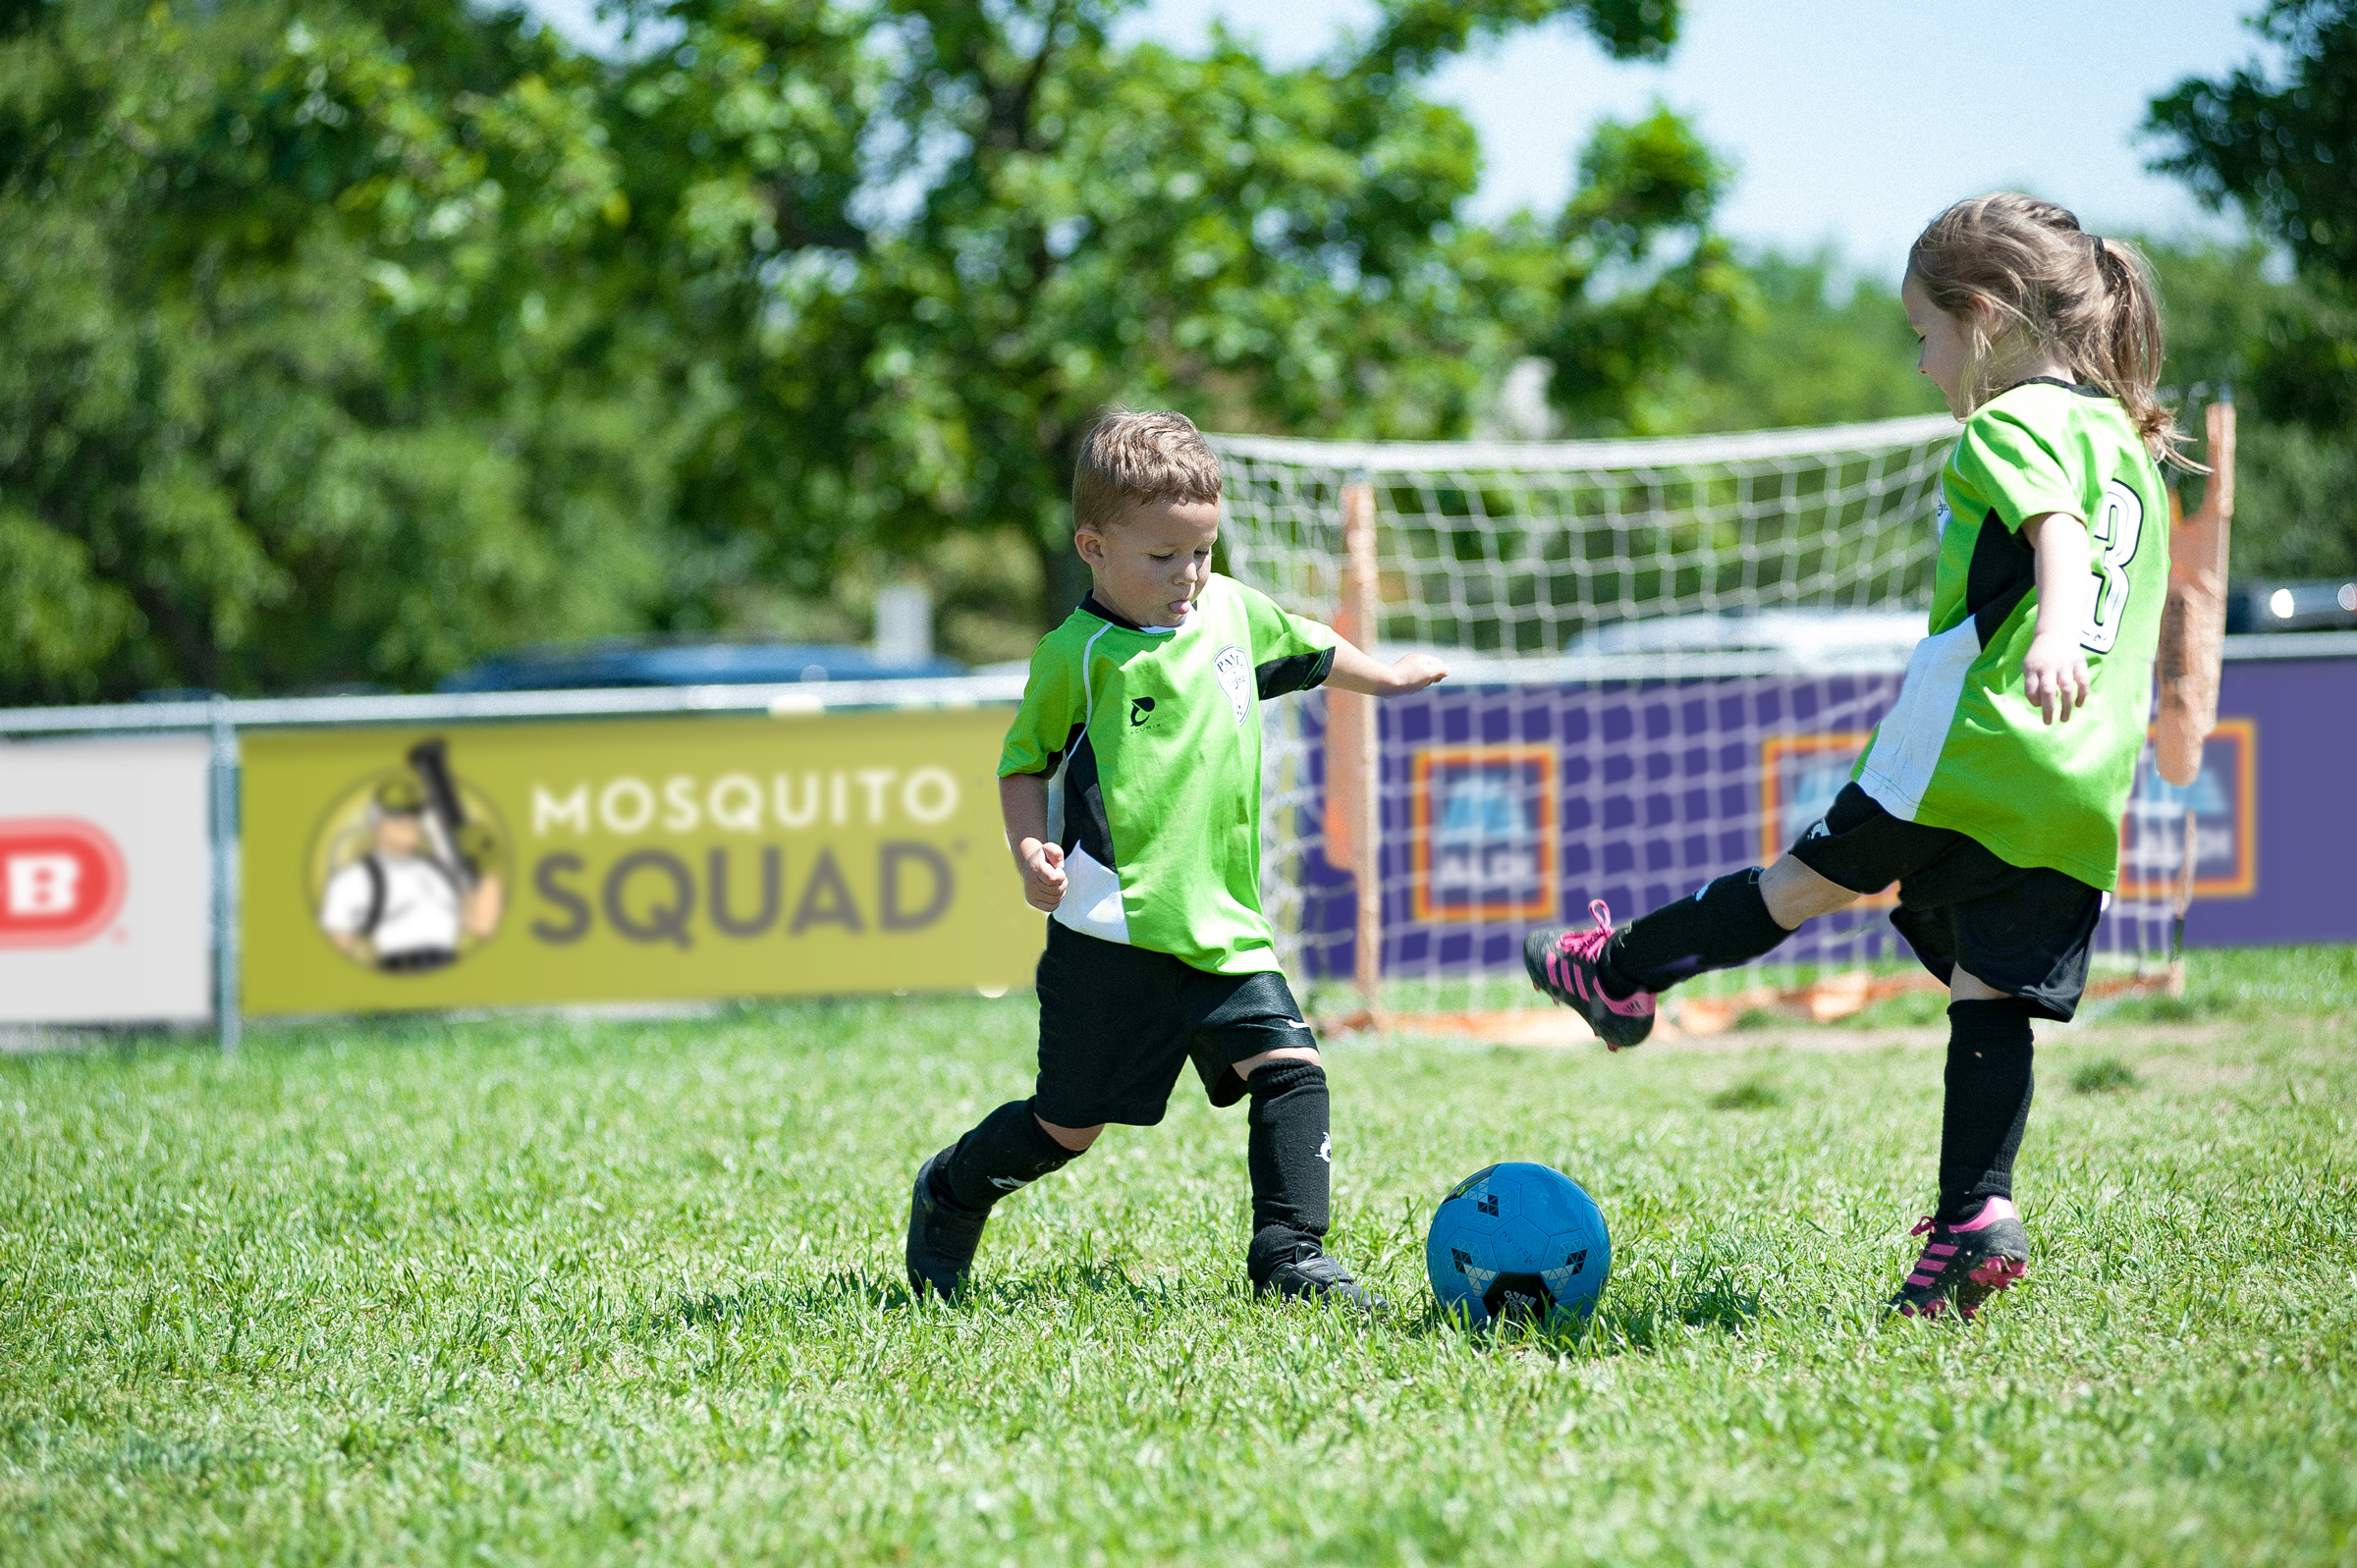 Community Partner Packages - Support youth soccer in our community while also promoting your business to future customers.